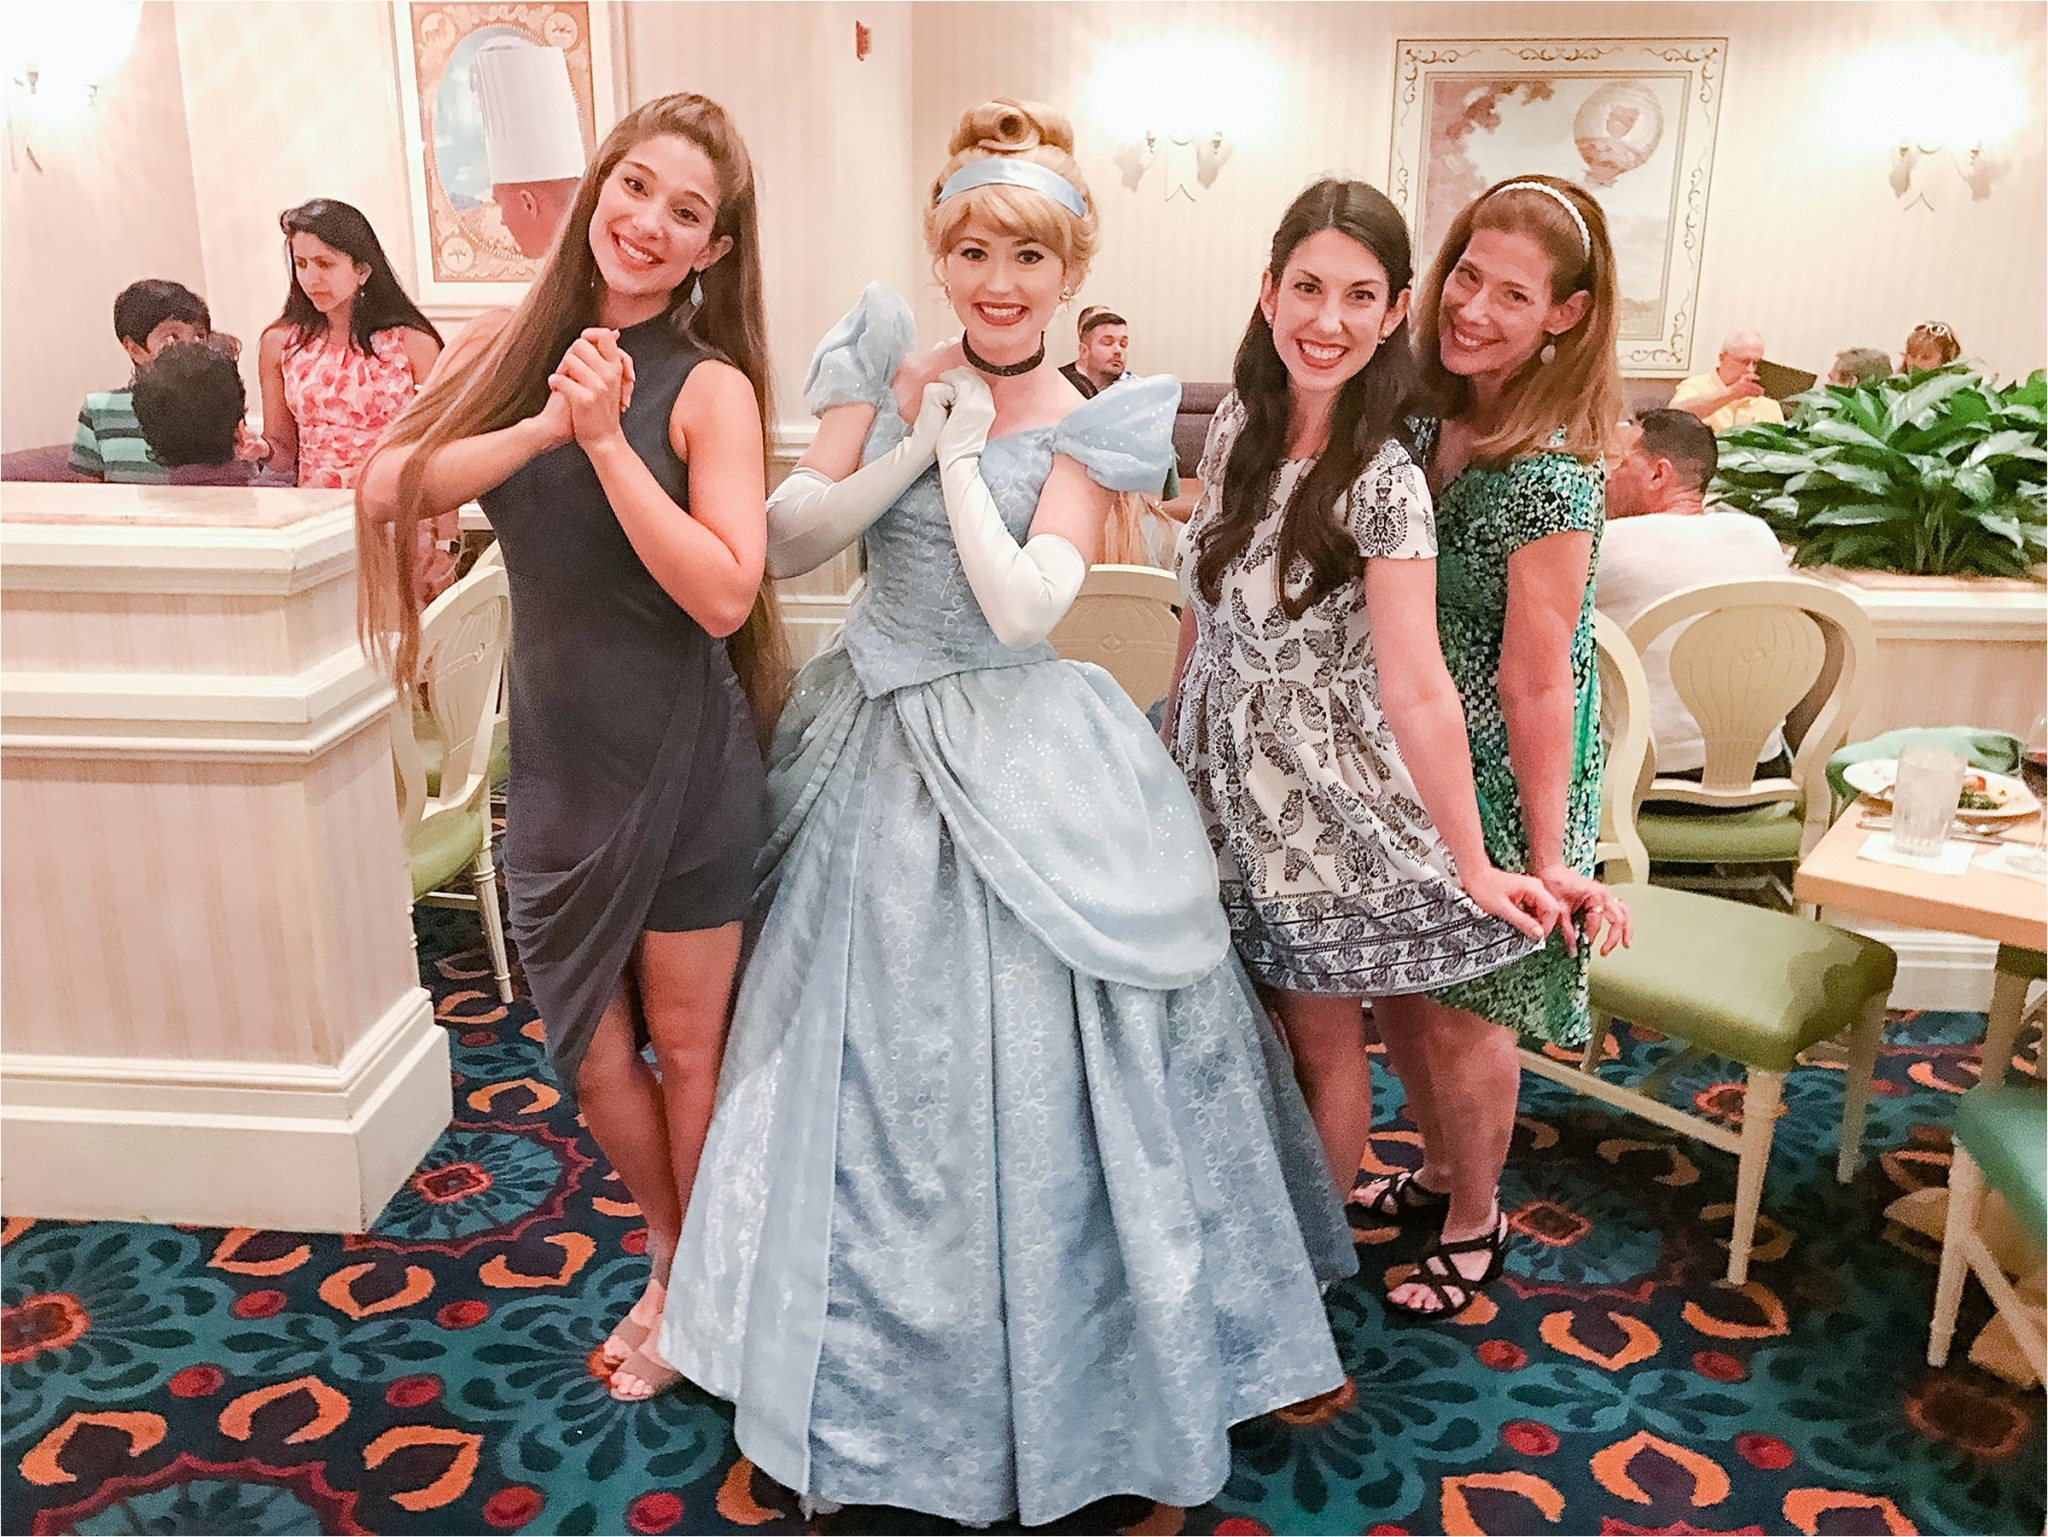 Cinderella at Disney !